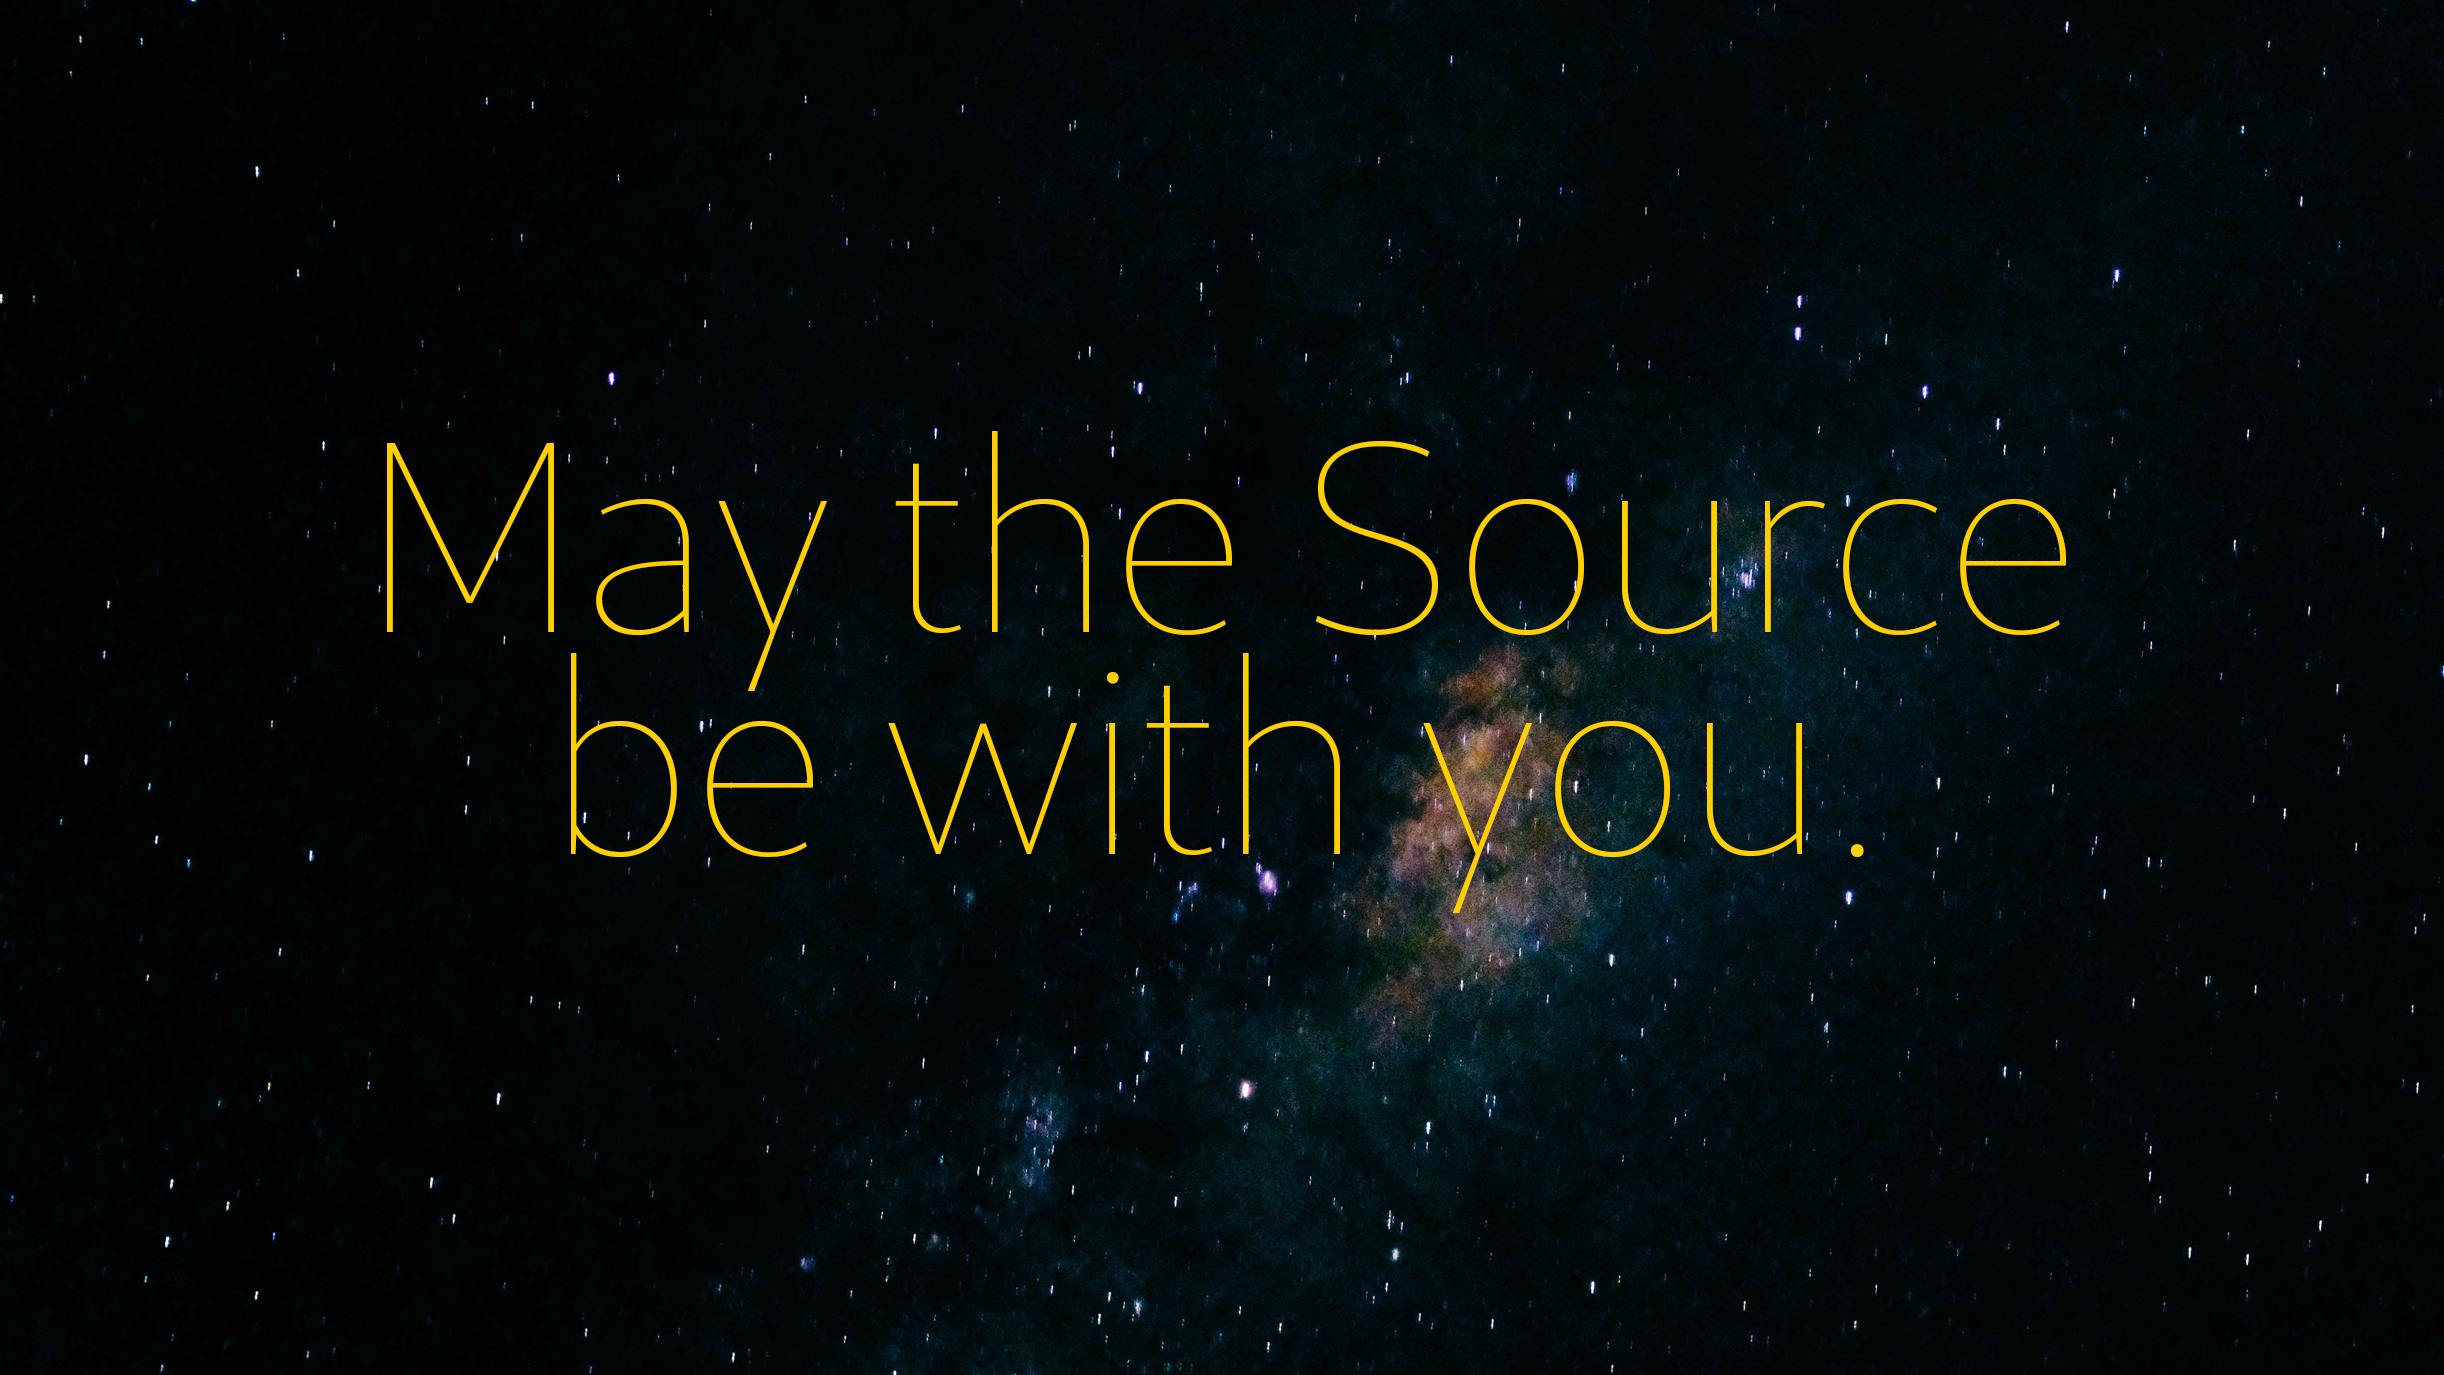 May the source be with you over stars and galaxies far, far away.